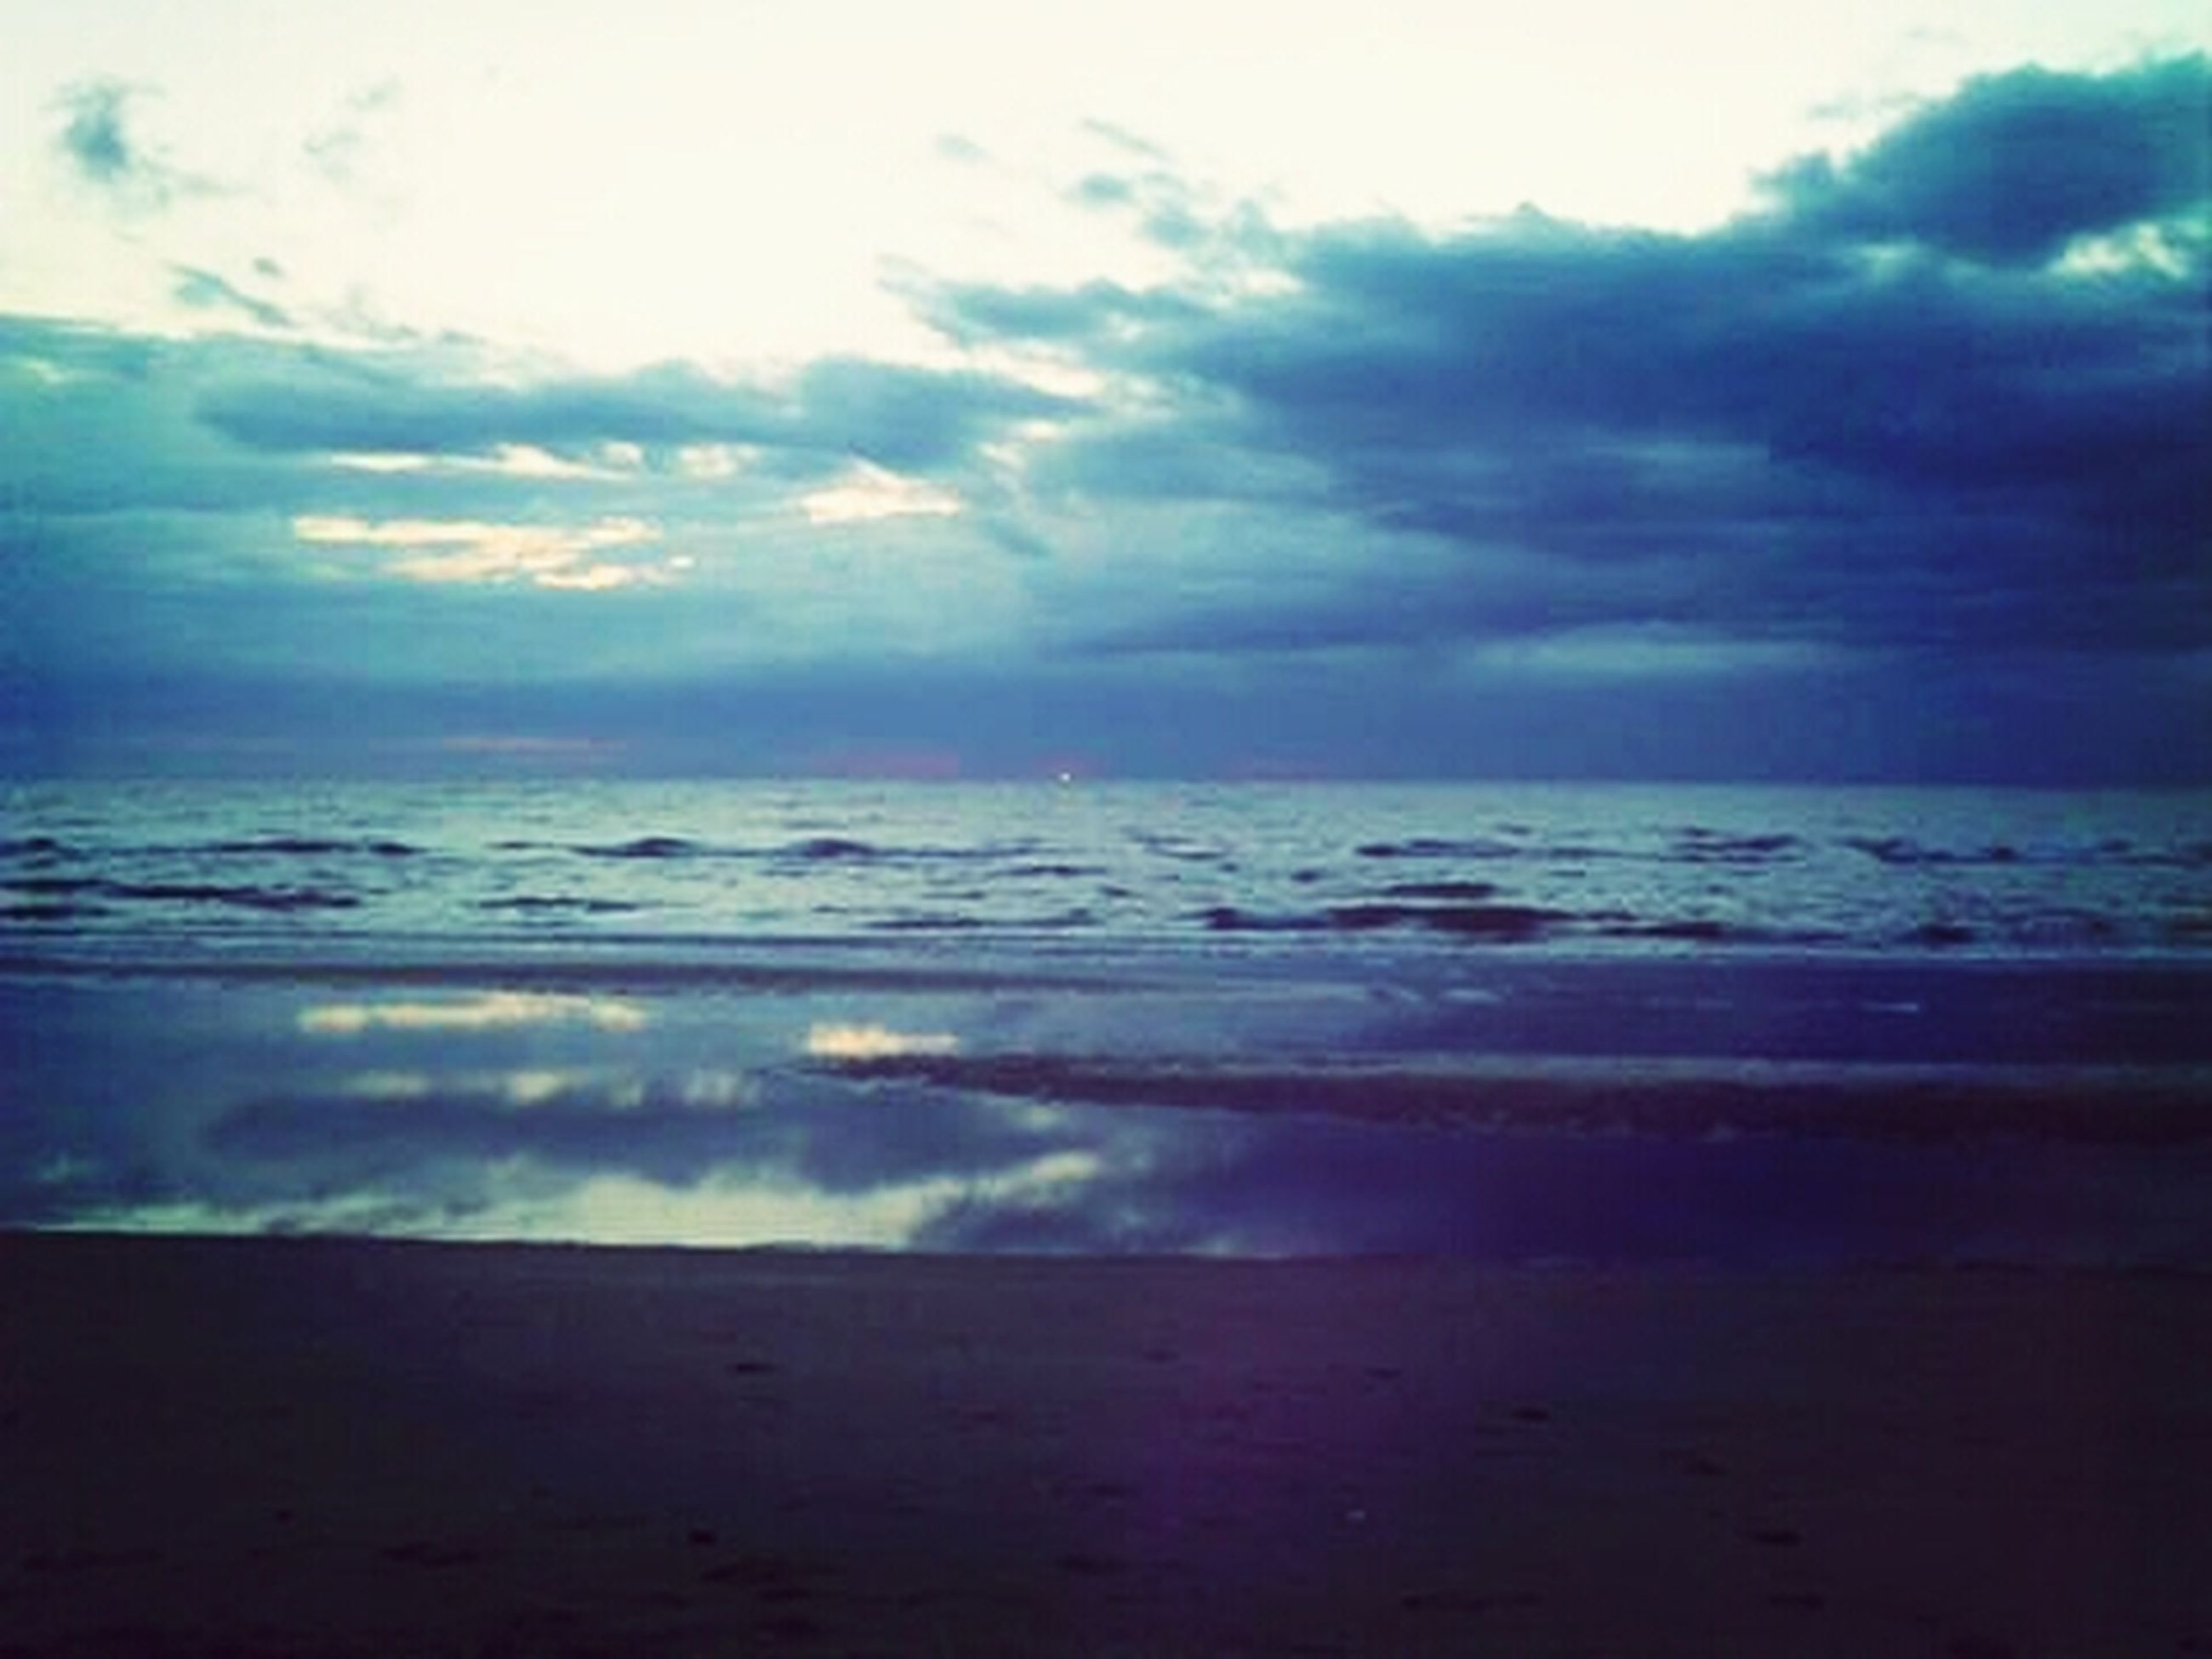 sea, horizon over water, sky, beach, tranquil scene, scenics, water, tranquility, beauty in nature, cloud - sky, shore, cloudy, nature, idyllic, cloud, sand, sunset, wave, dusk, weather